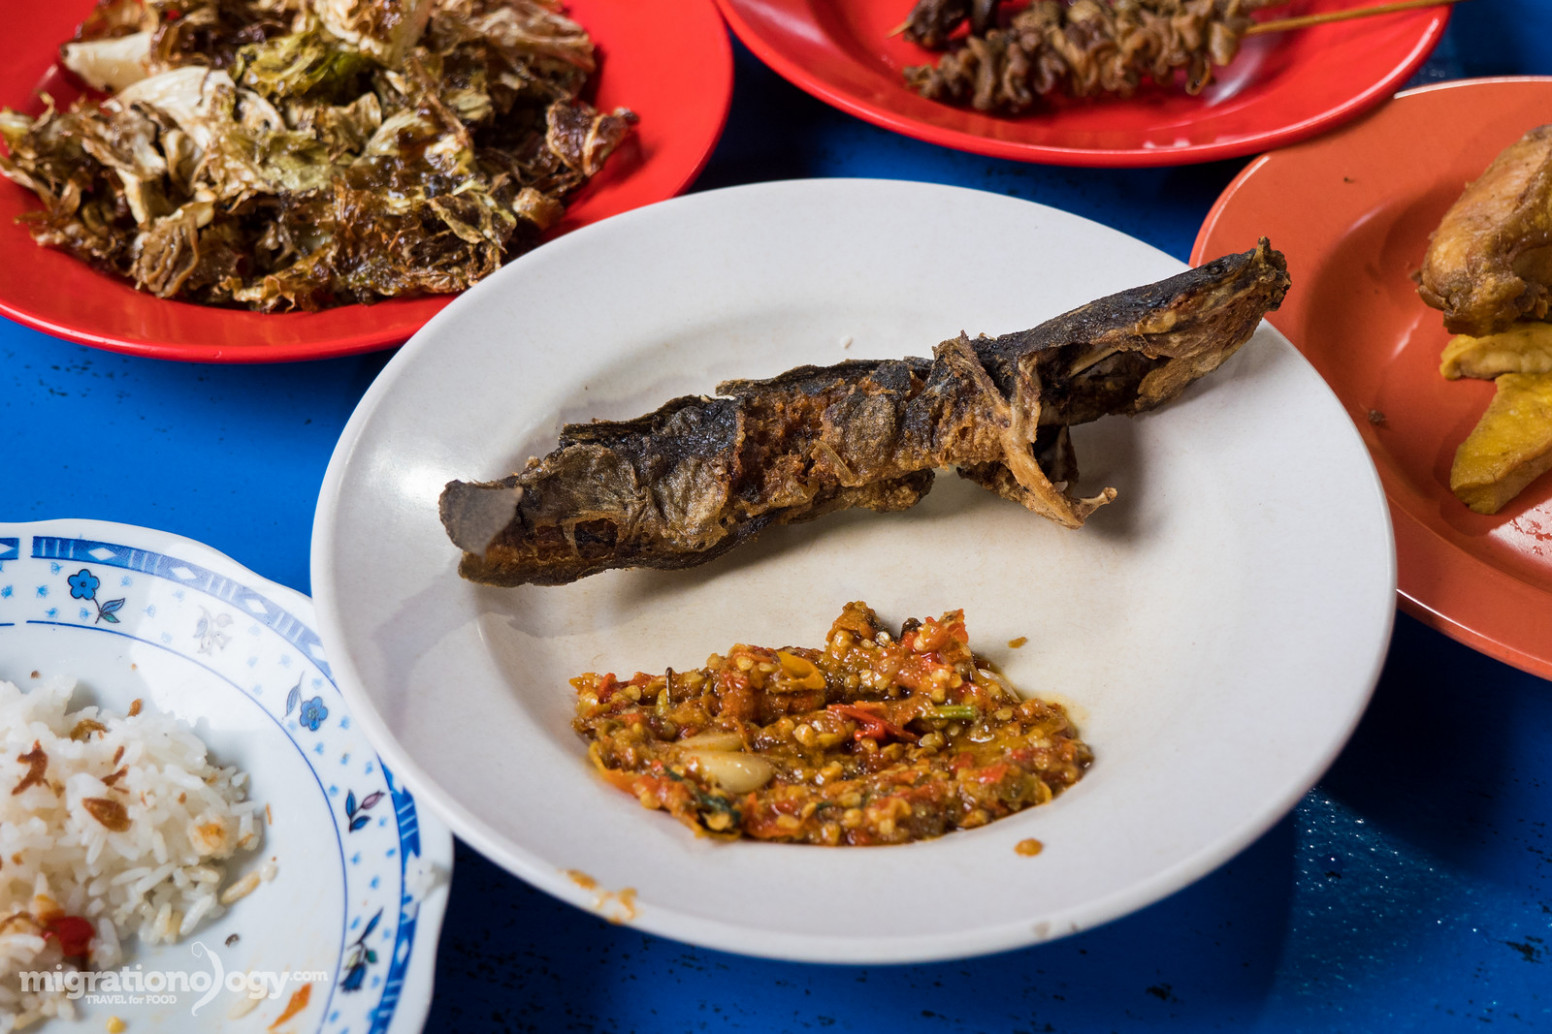 Indonesian Food: 15 of the Best Dishes You Should Eat - indonesian food recipes